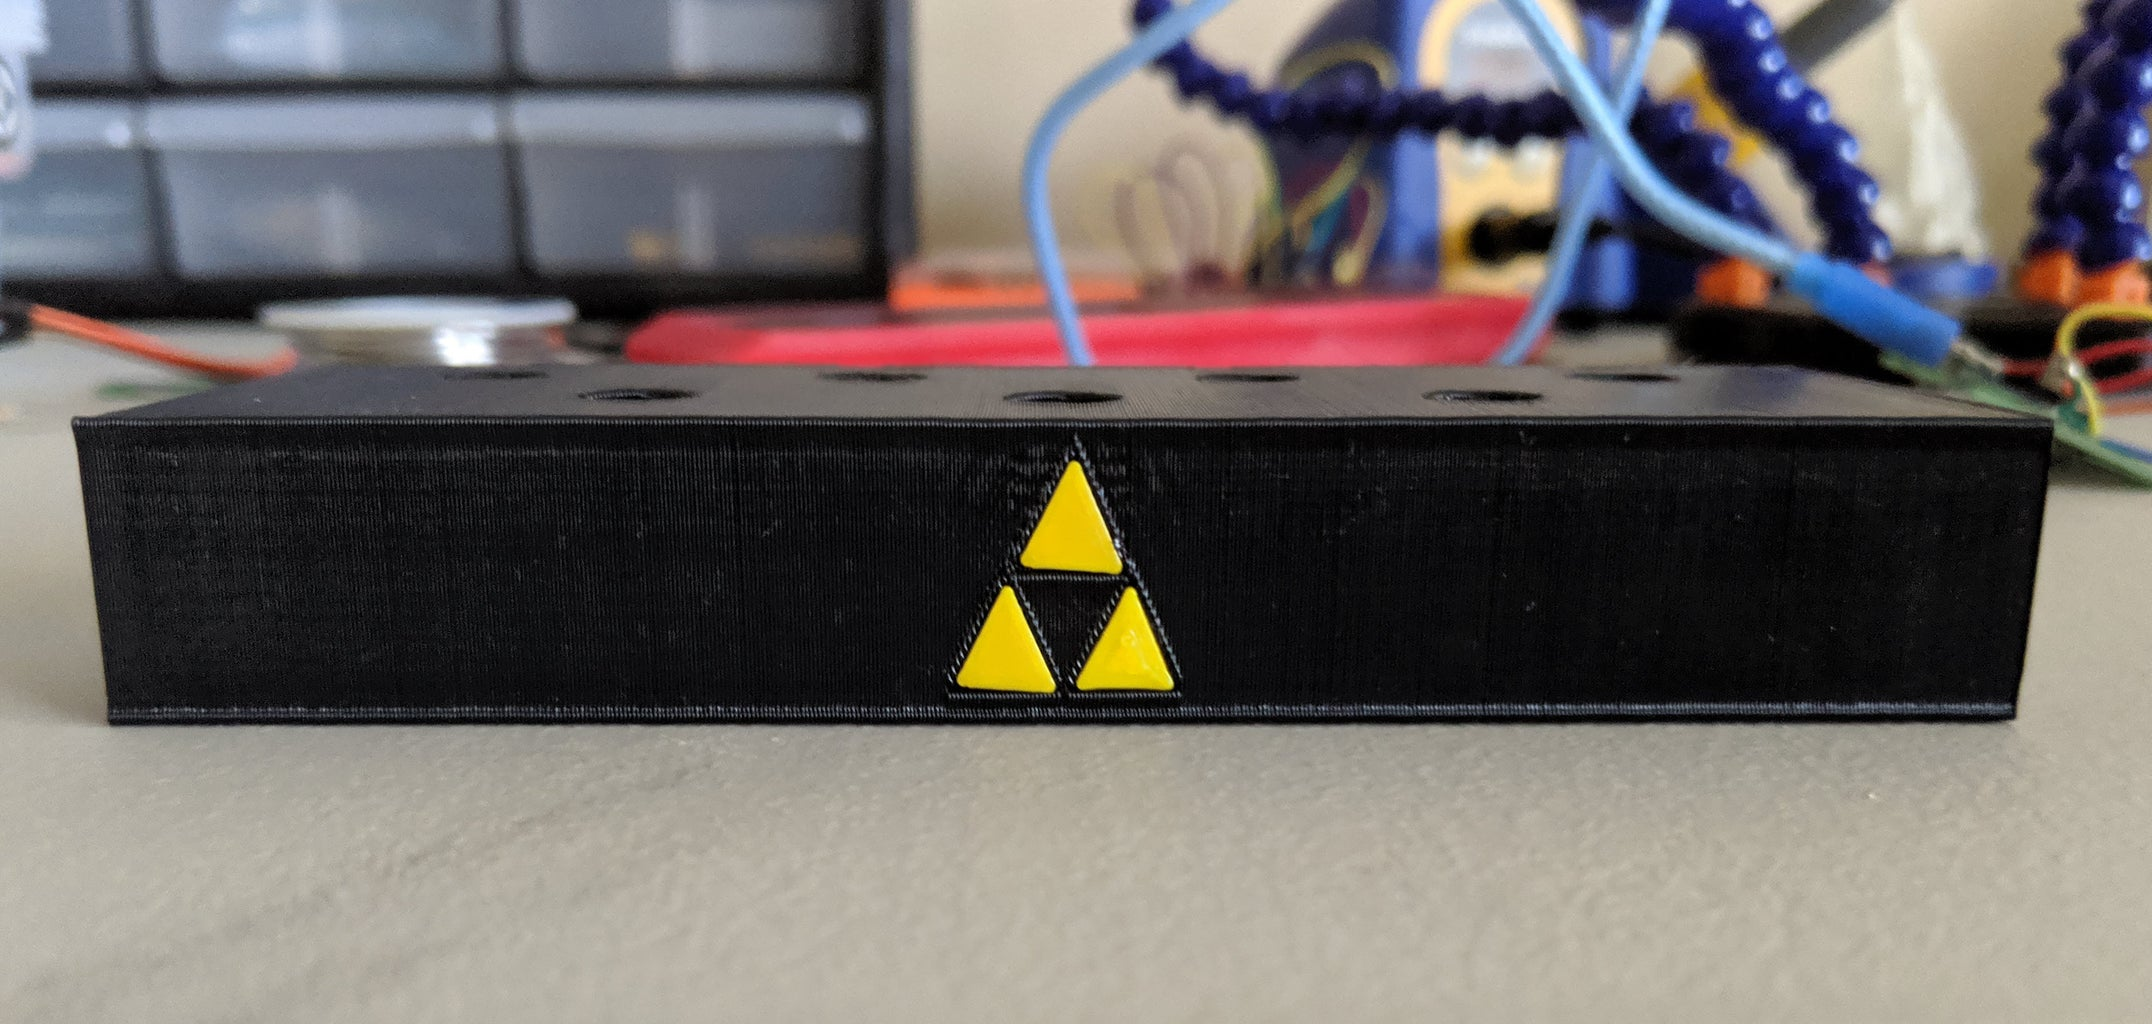 Print and Attach the Triforce Pieces